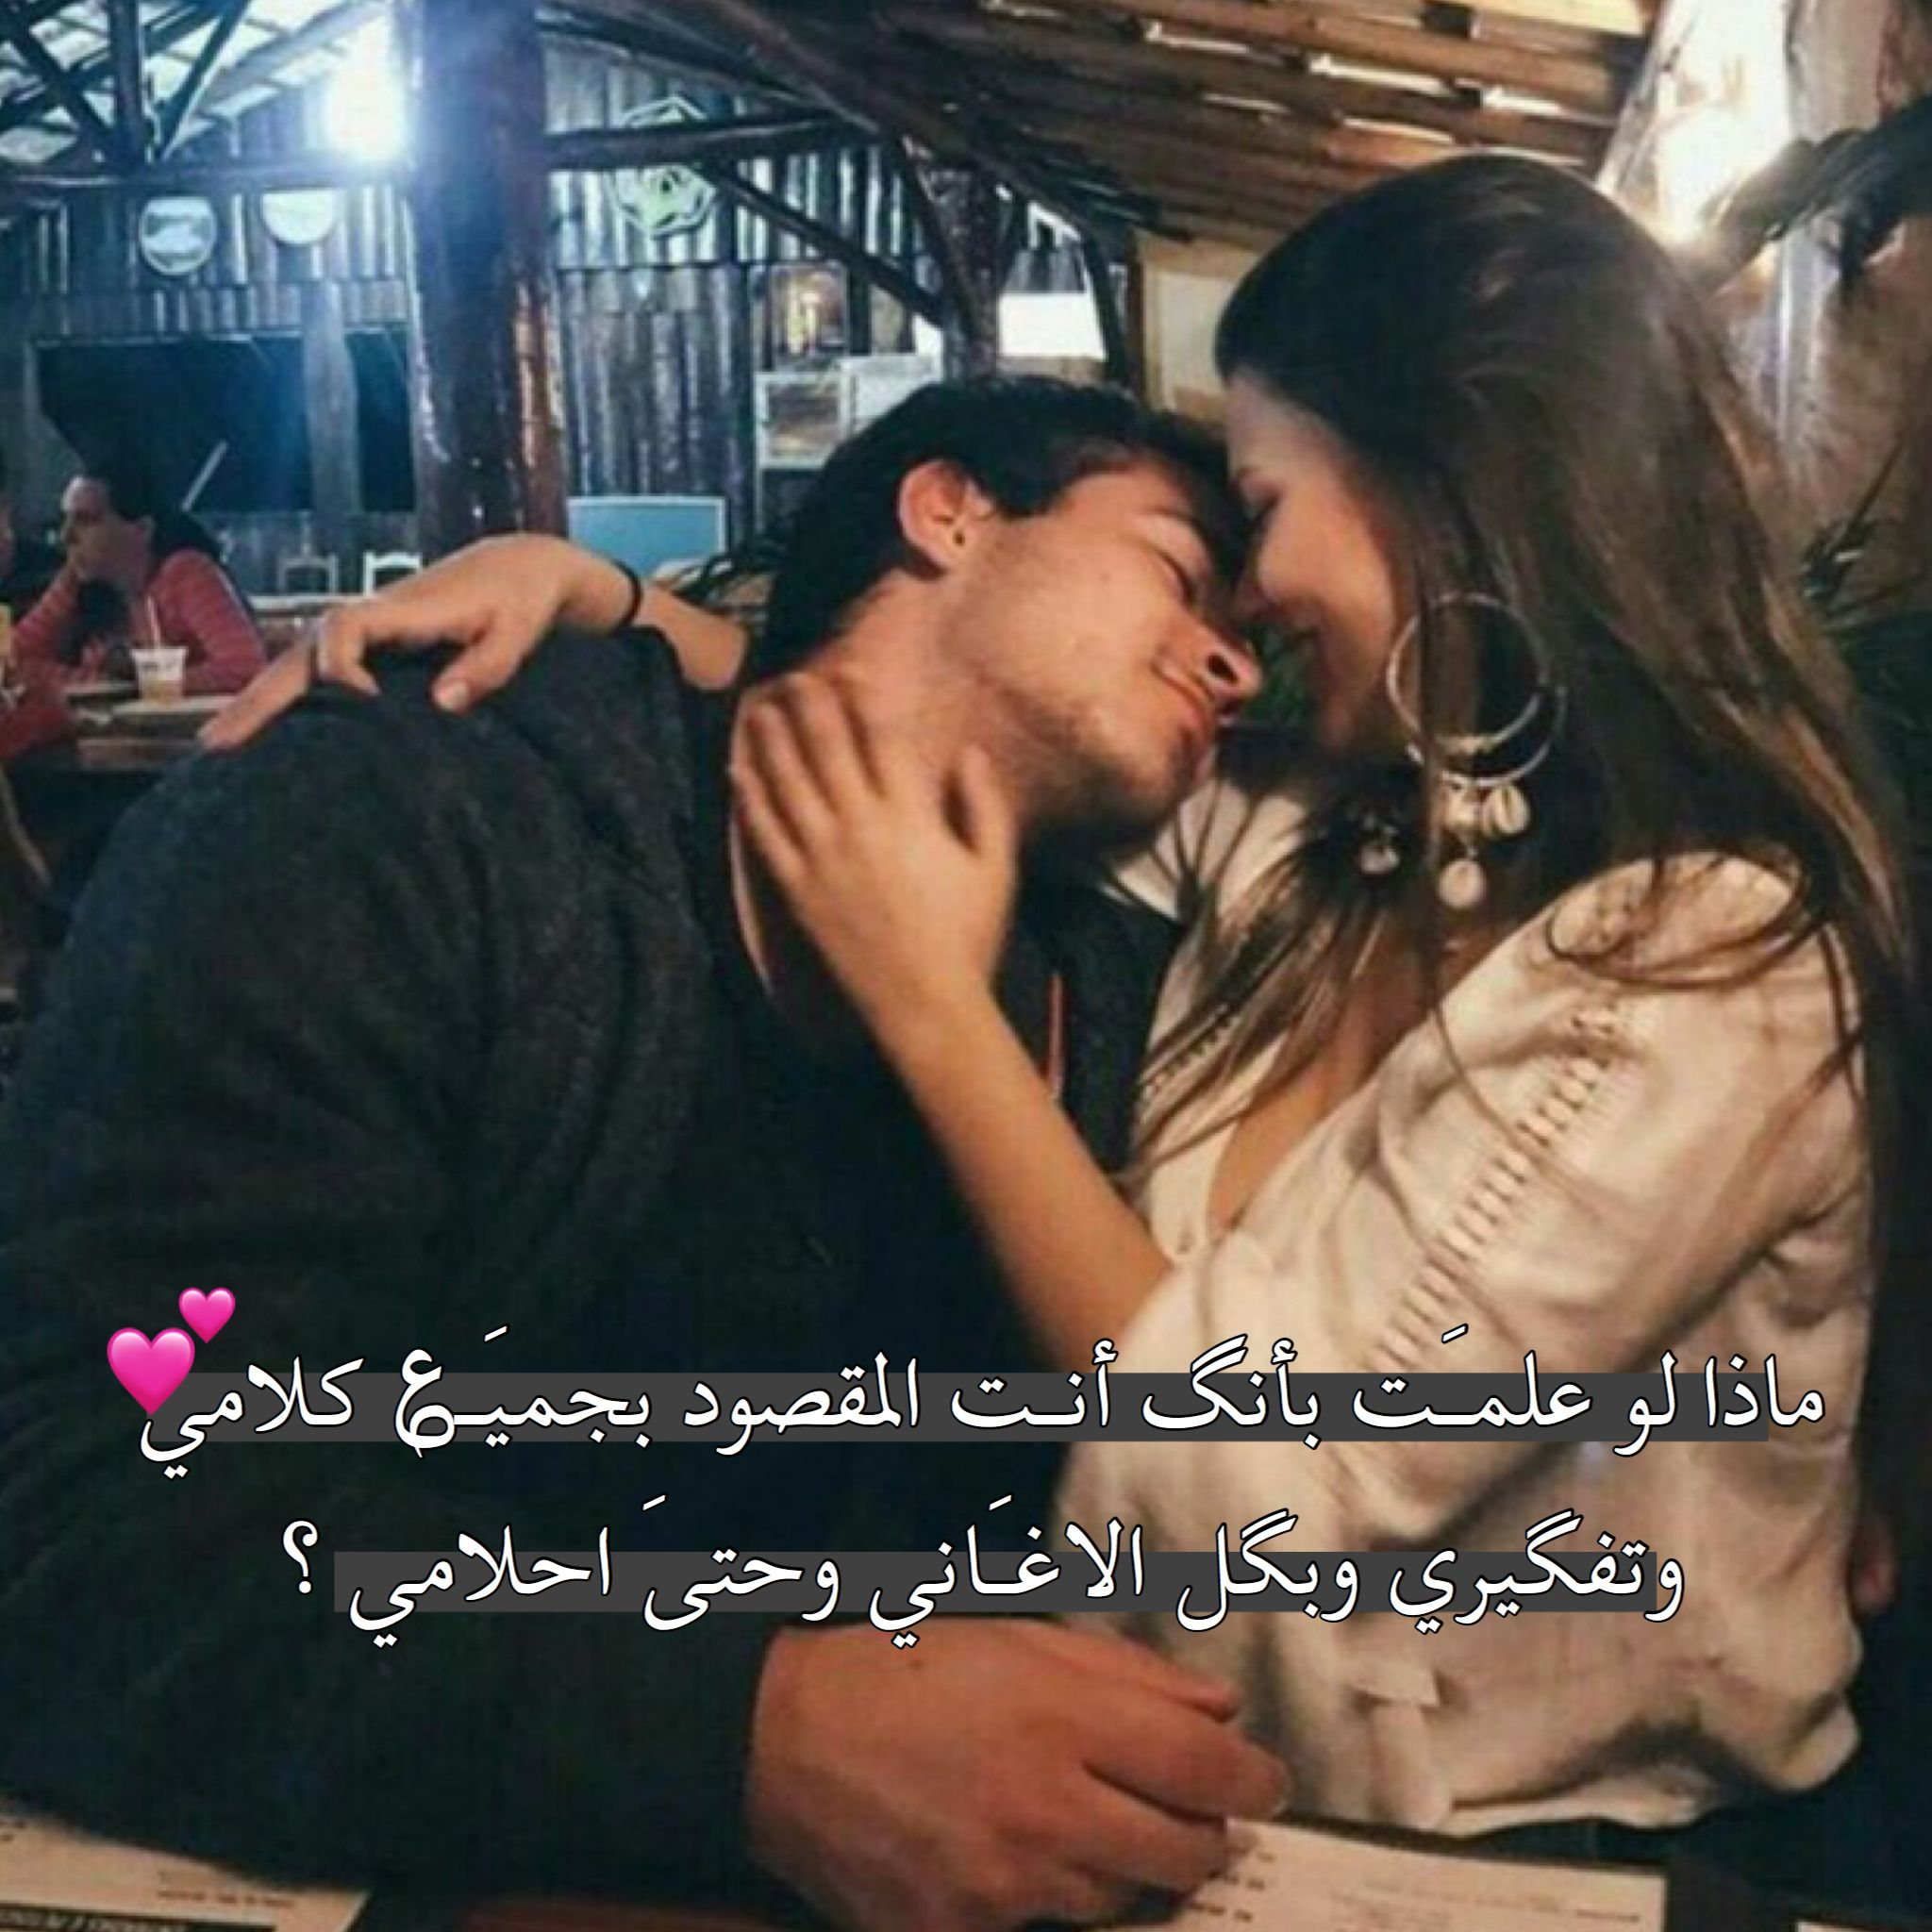 Pin By Ahmed Amine On رمزيات Arabic Love Quotes Love Words Romantic Images